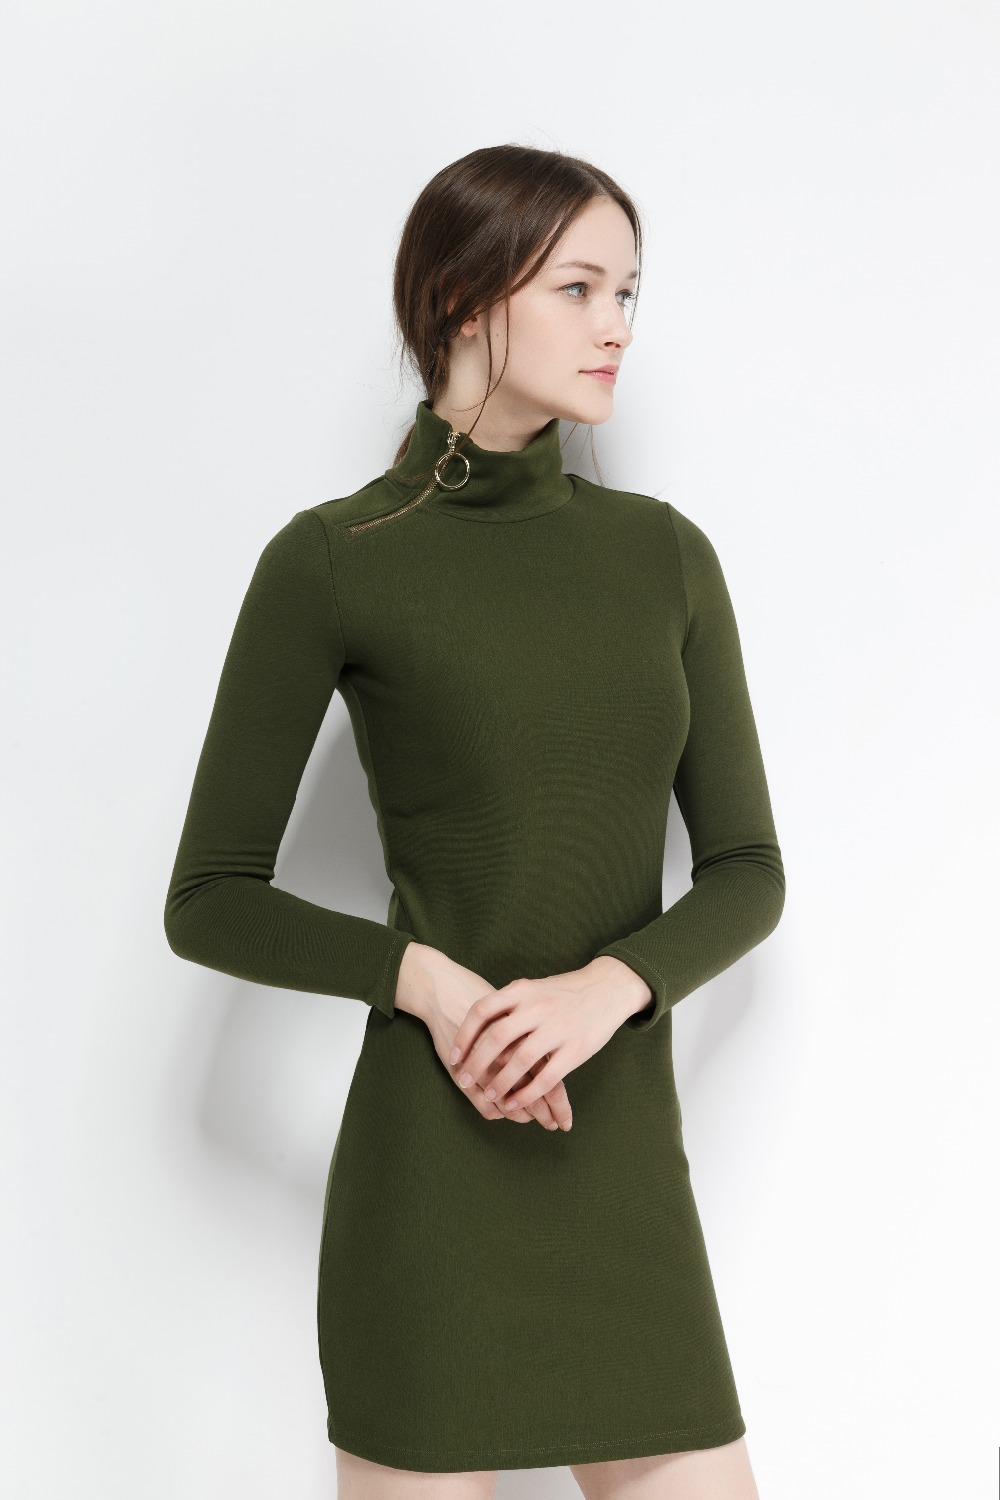 2017 autumn winter new dress Mid waist long sleeve button knitted turtleneck solid dress with zippers